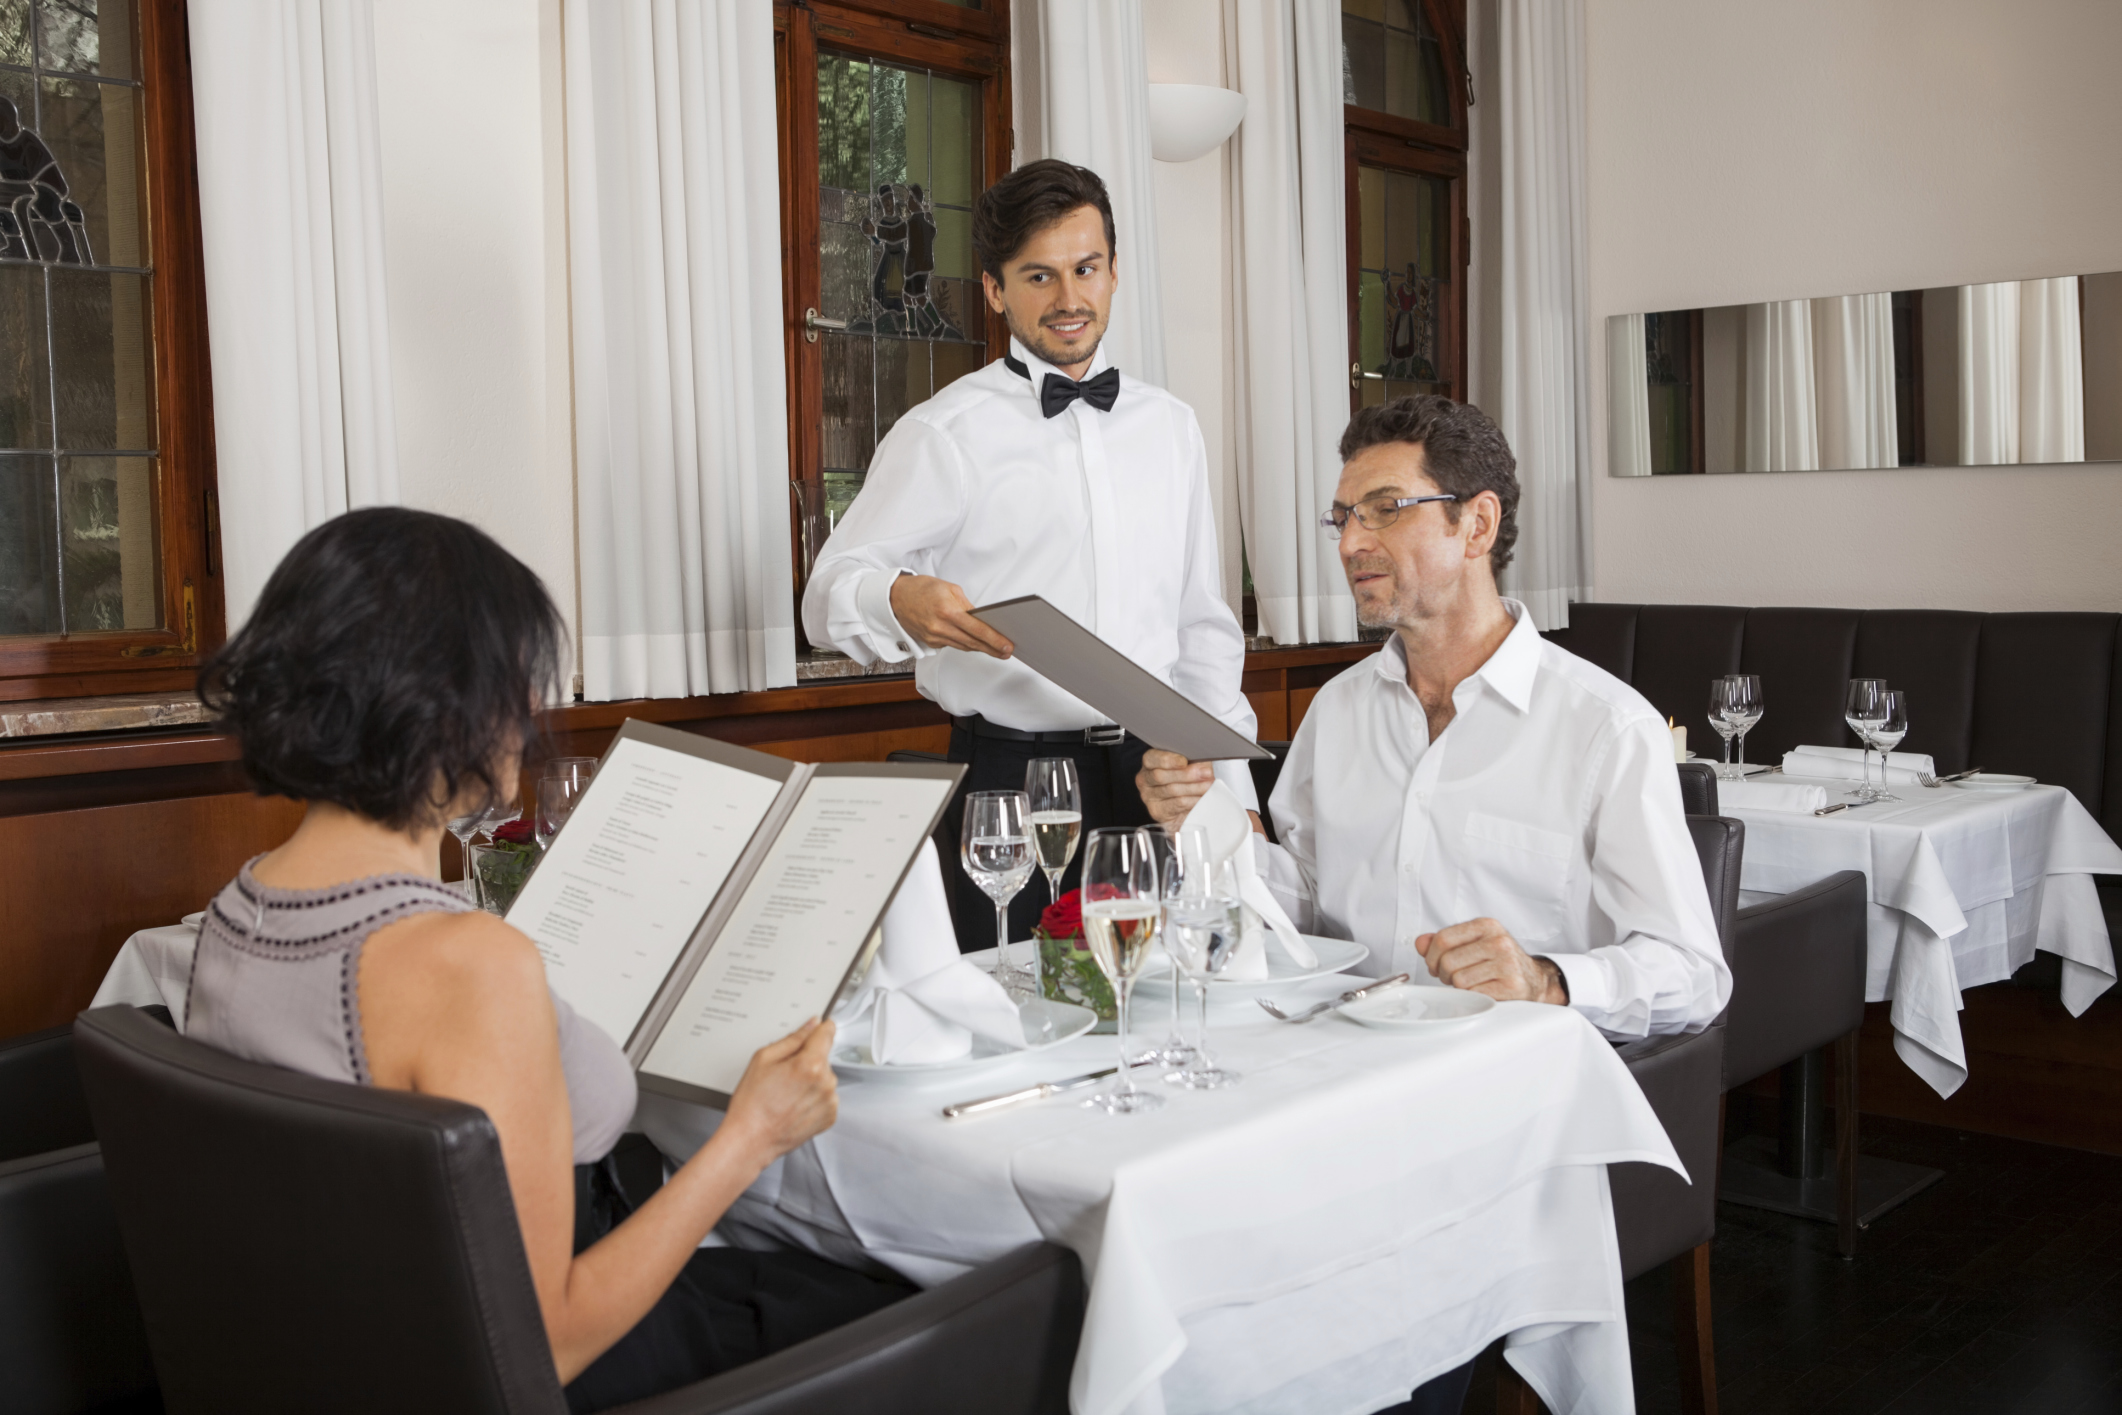 waiter etiquette for fine dining